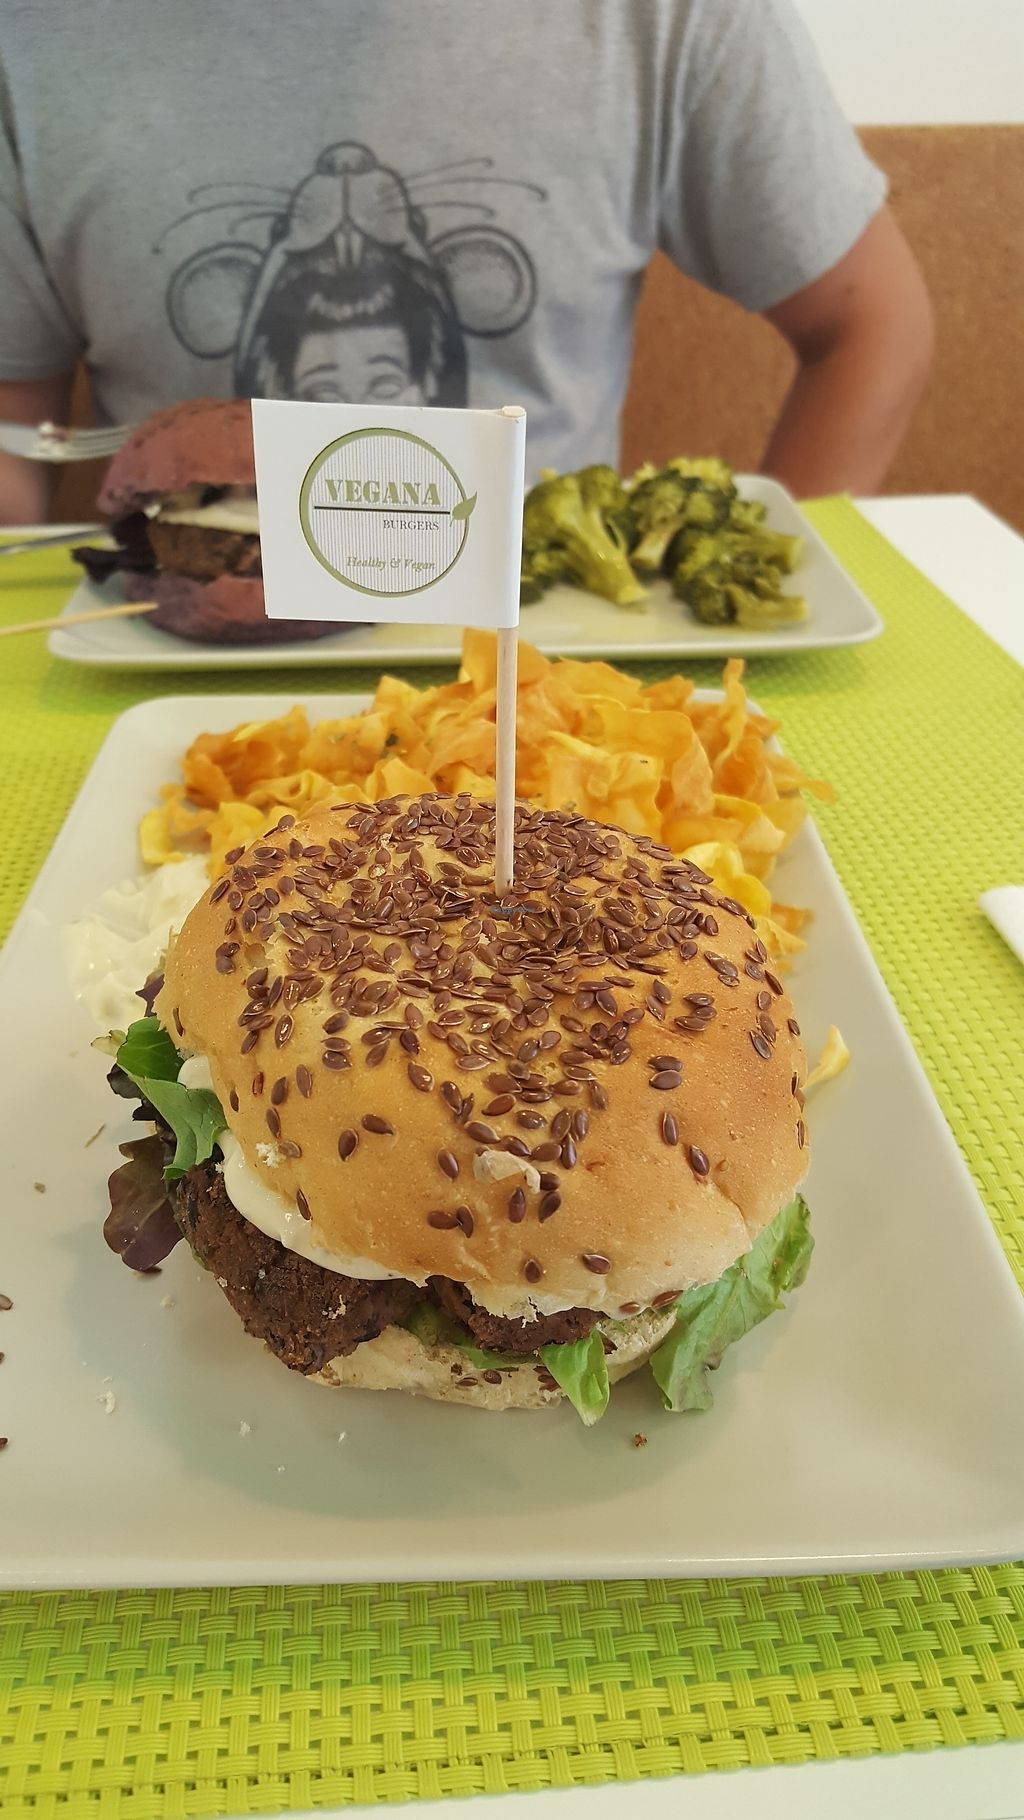 """Photo of Vegana Burgers - Cais do Sodre  by <a href=""""/members/profile/ErinTravels"""">ErinTravels</a> <br/>Mushroom & bean burger on fig bread <br/> July 13, 2017  - <a href='/contact/abuse/image/84623/279900'>Report</a>"""